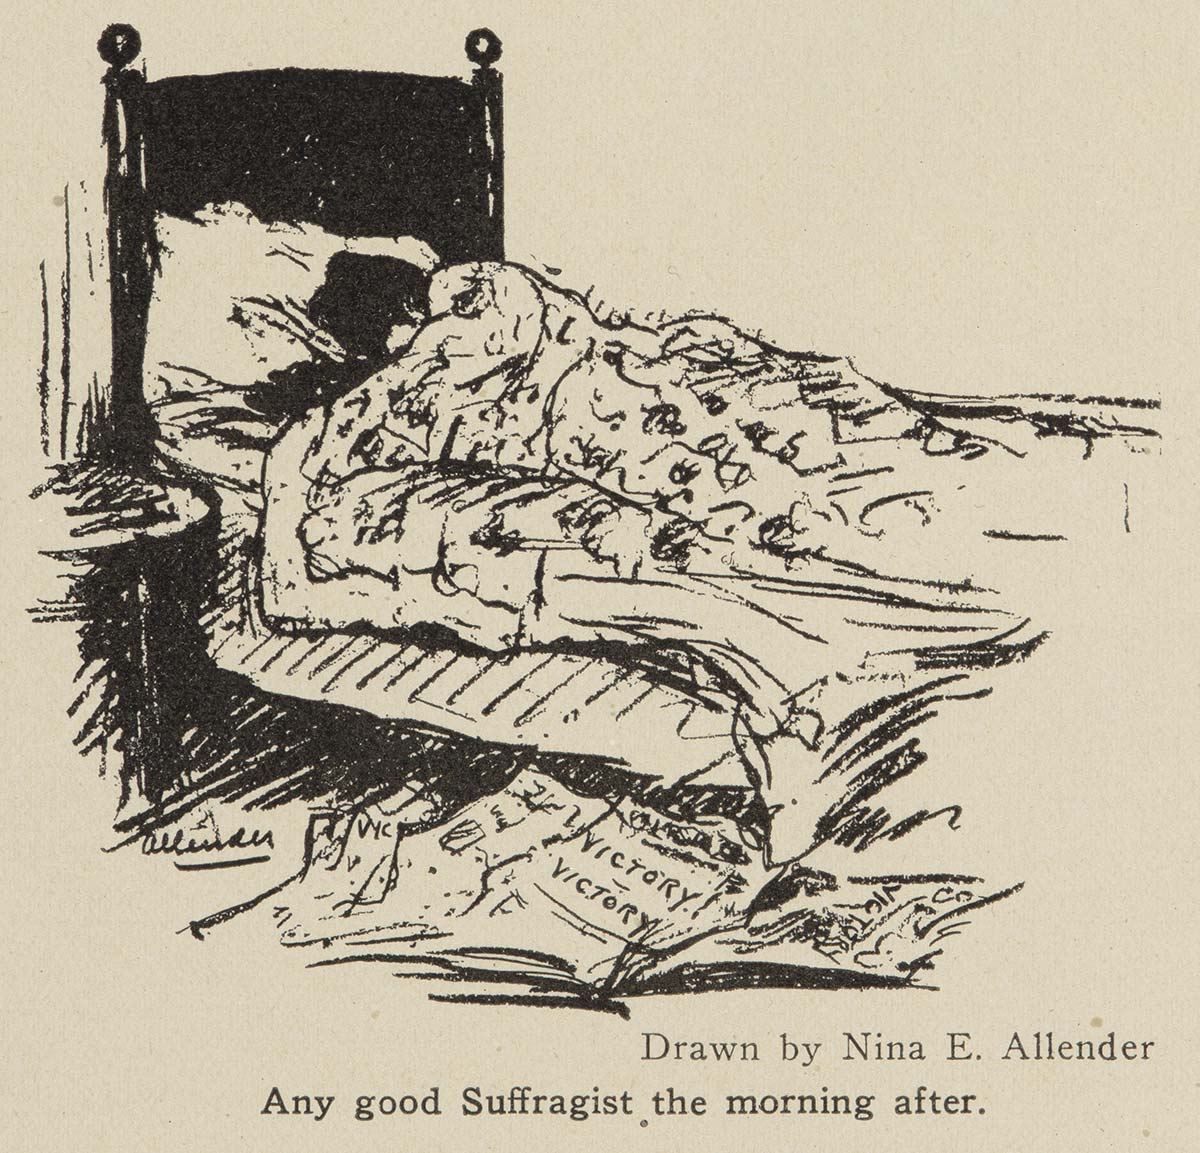 Political illustration of a sleeping suffragist surrounded by newspapers trumpeting the woman suffrage victory with caption Any good Suffragist the morning after. Drawn by Nina E. Allender, captioned: Any good Suffragist the morning after.